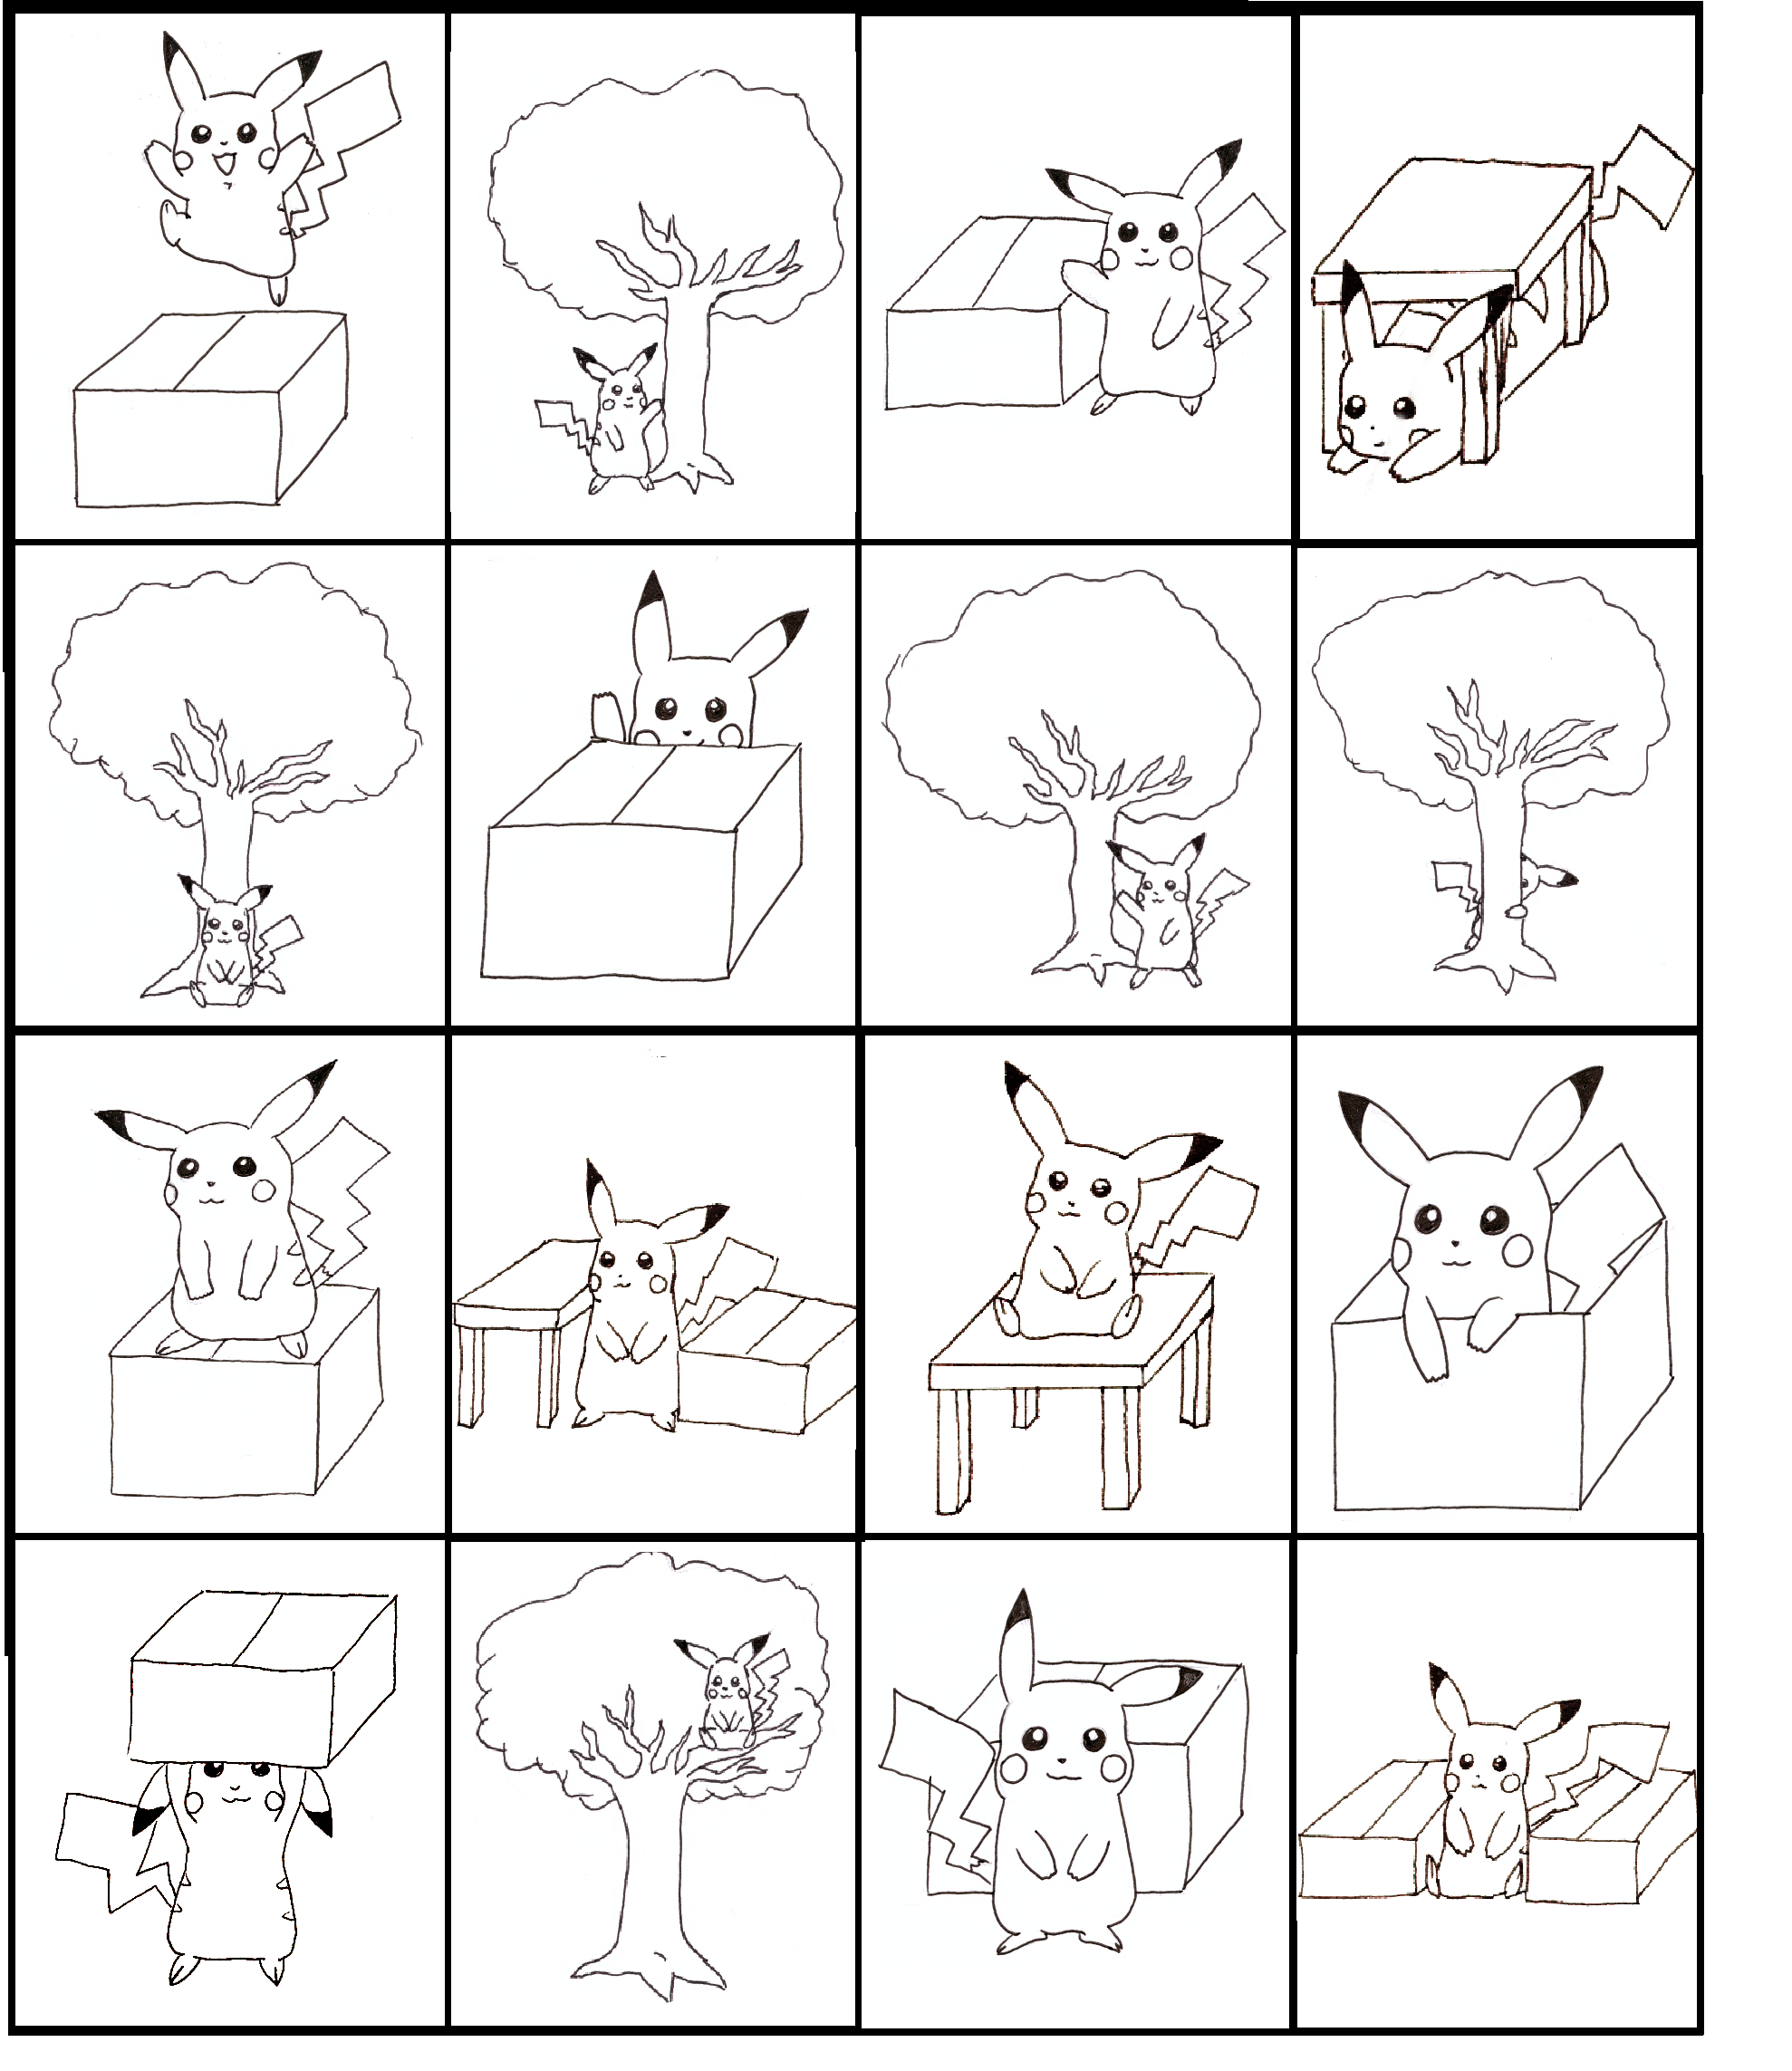 Pikachu Bingo Practicing Prepositions Board 1 Of 4 Made